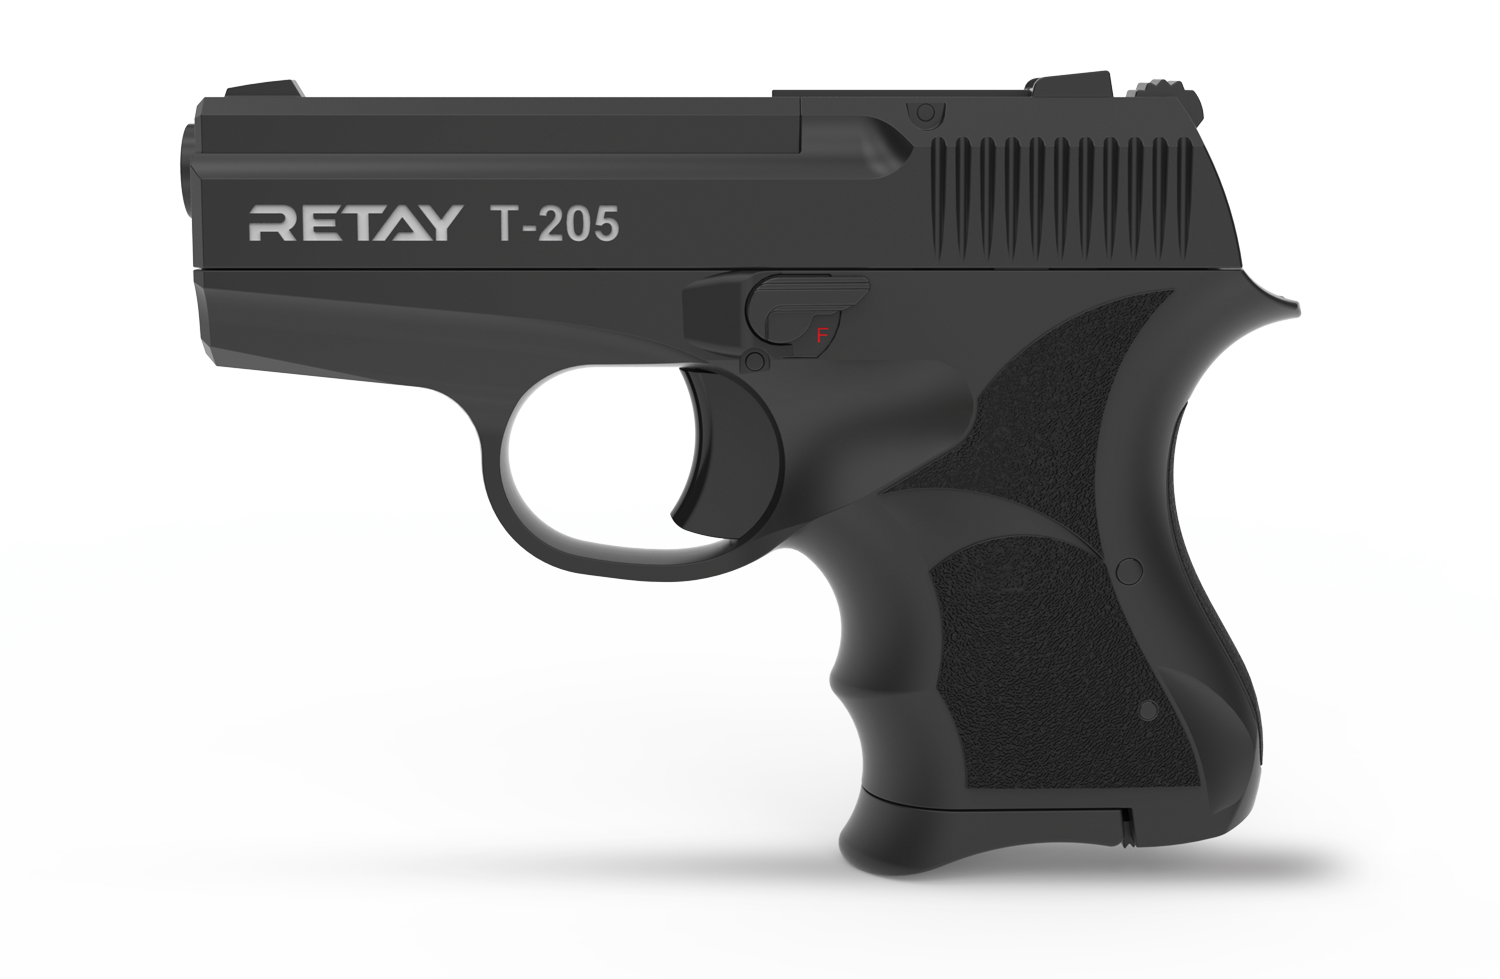 Retay T205 Black | Article No: E660333B 1130 1